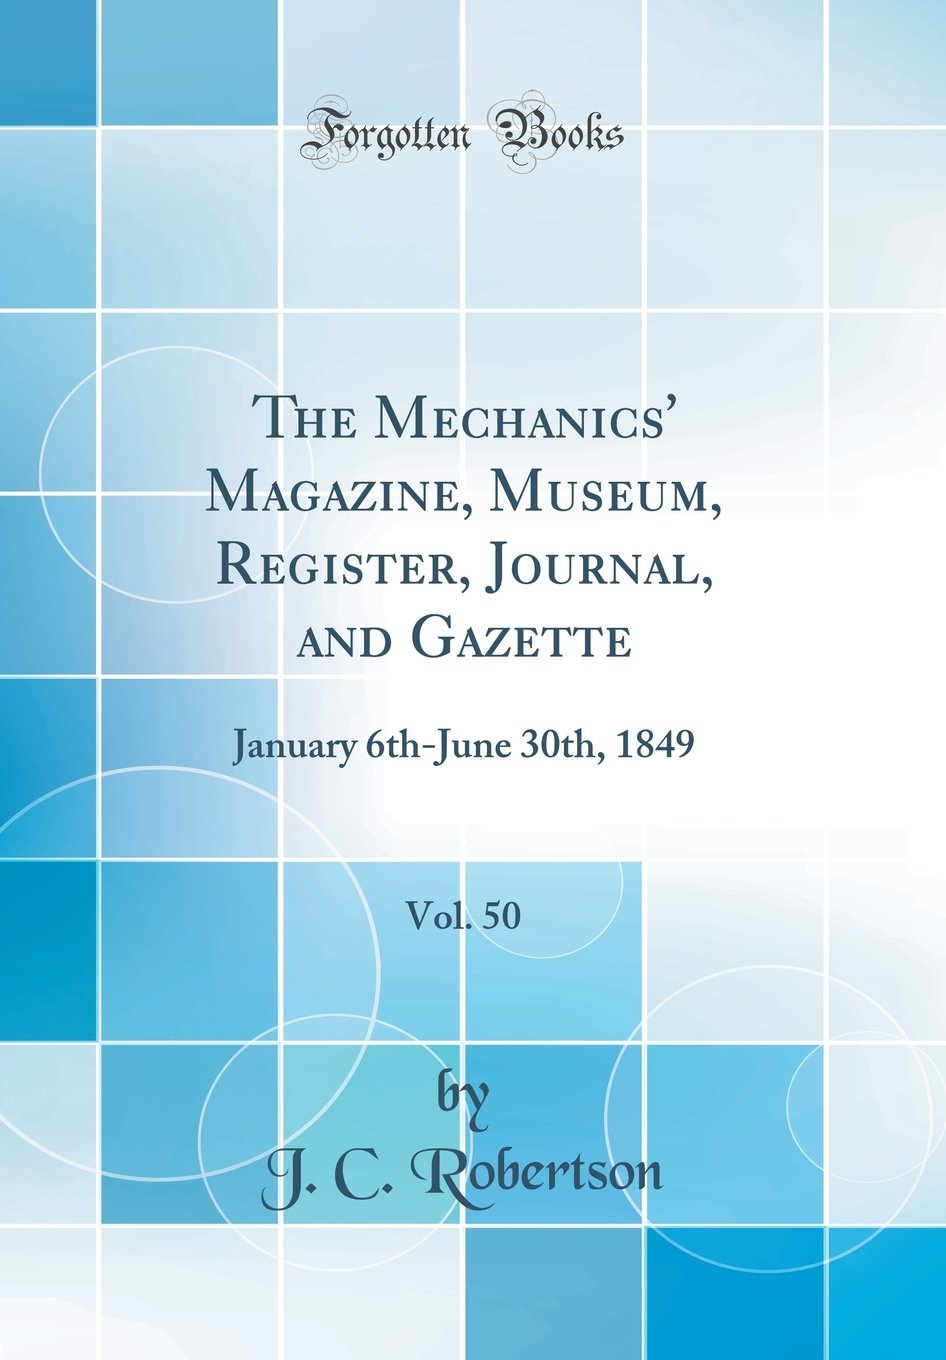 The Mechanics' Magazine, Museum, Register, Journal, and Gazette, Vol. 50: January 6th-June 30th, 1849 (Classic Reprint) ebook